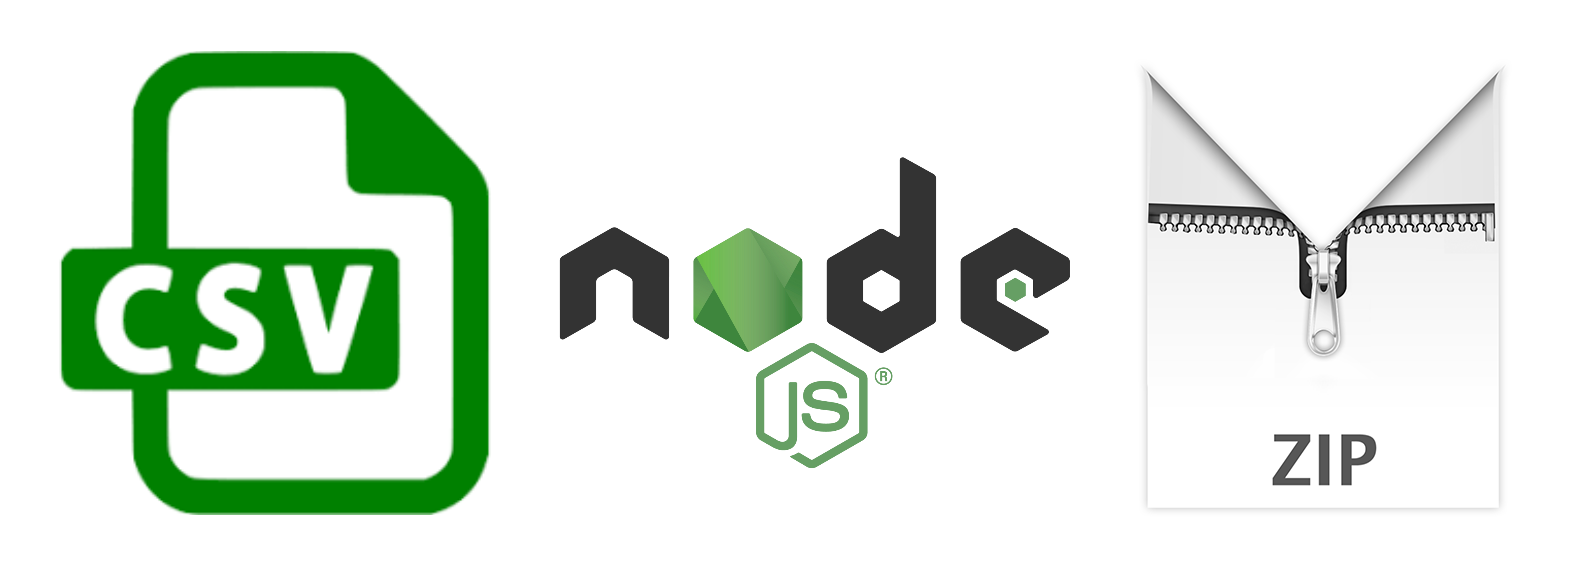 Creating CSV and ZIP files With Node js - Better Programming